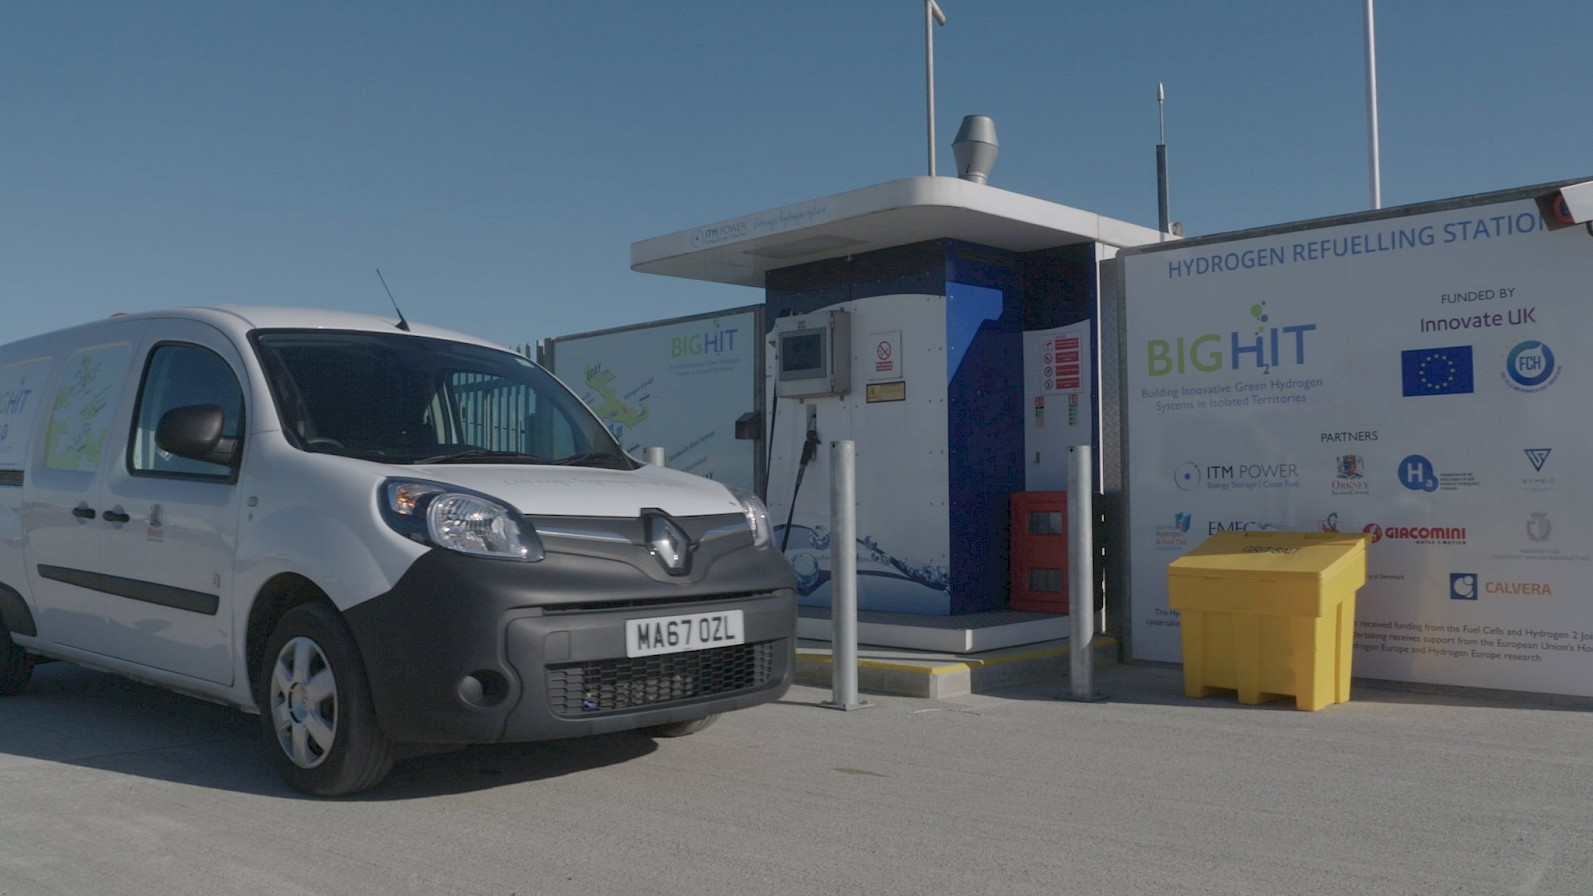 Hydrogen refuelling station in Orkney